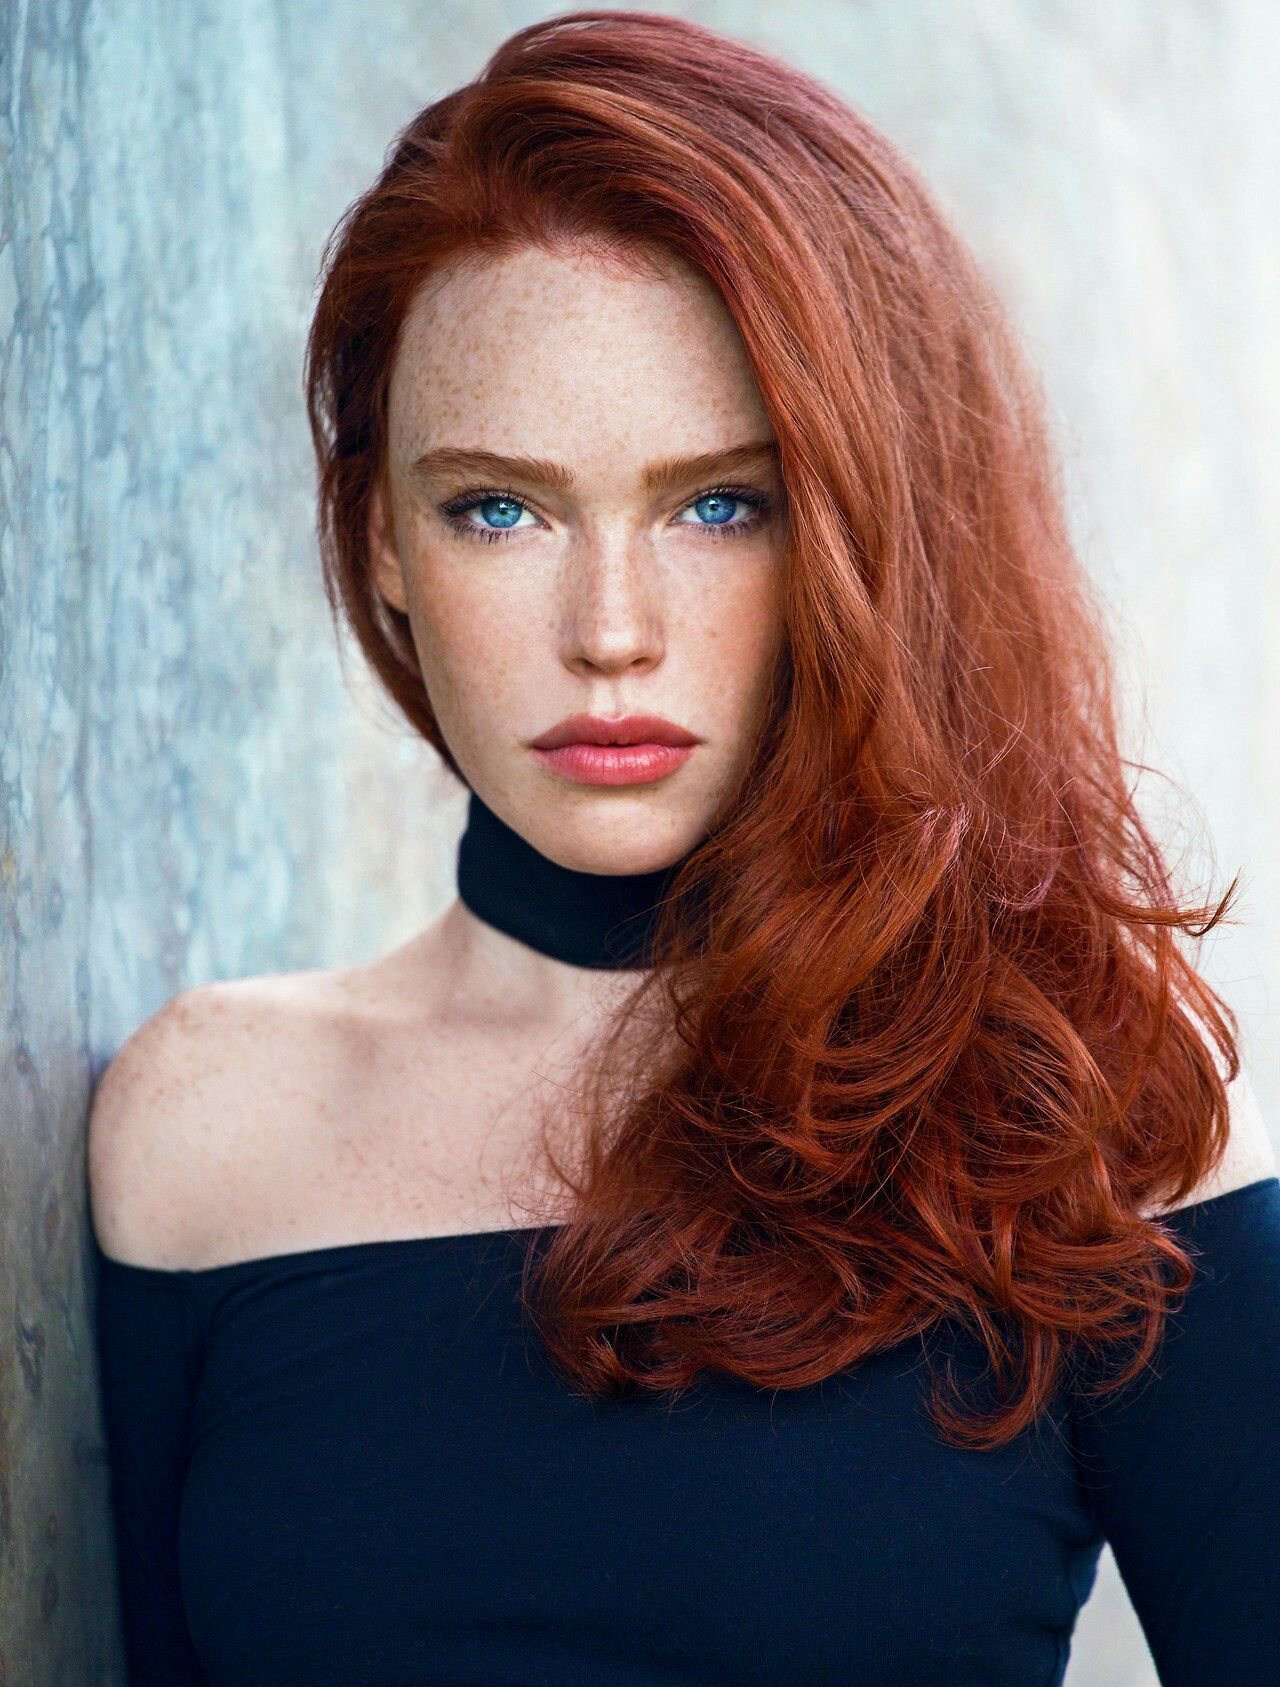 Https I Pinimg Com Originals 45 Aa 51 45aa51cb985e7a14b3f89edb57286edf Jpg Beautiful Red Hair Redhead Hairstyles Beautiful Redhead